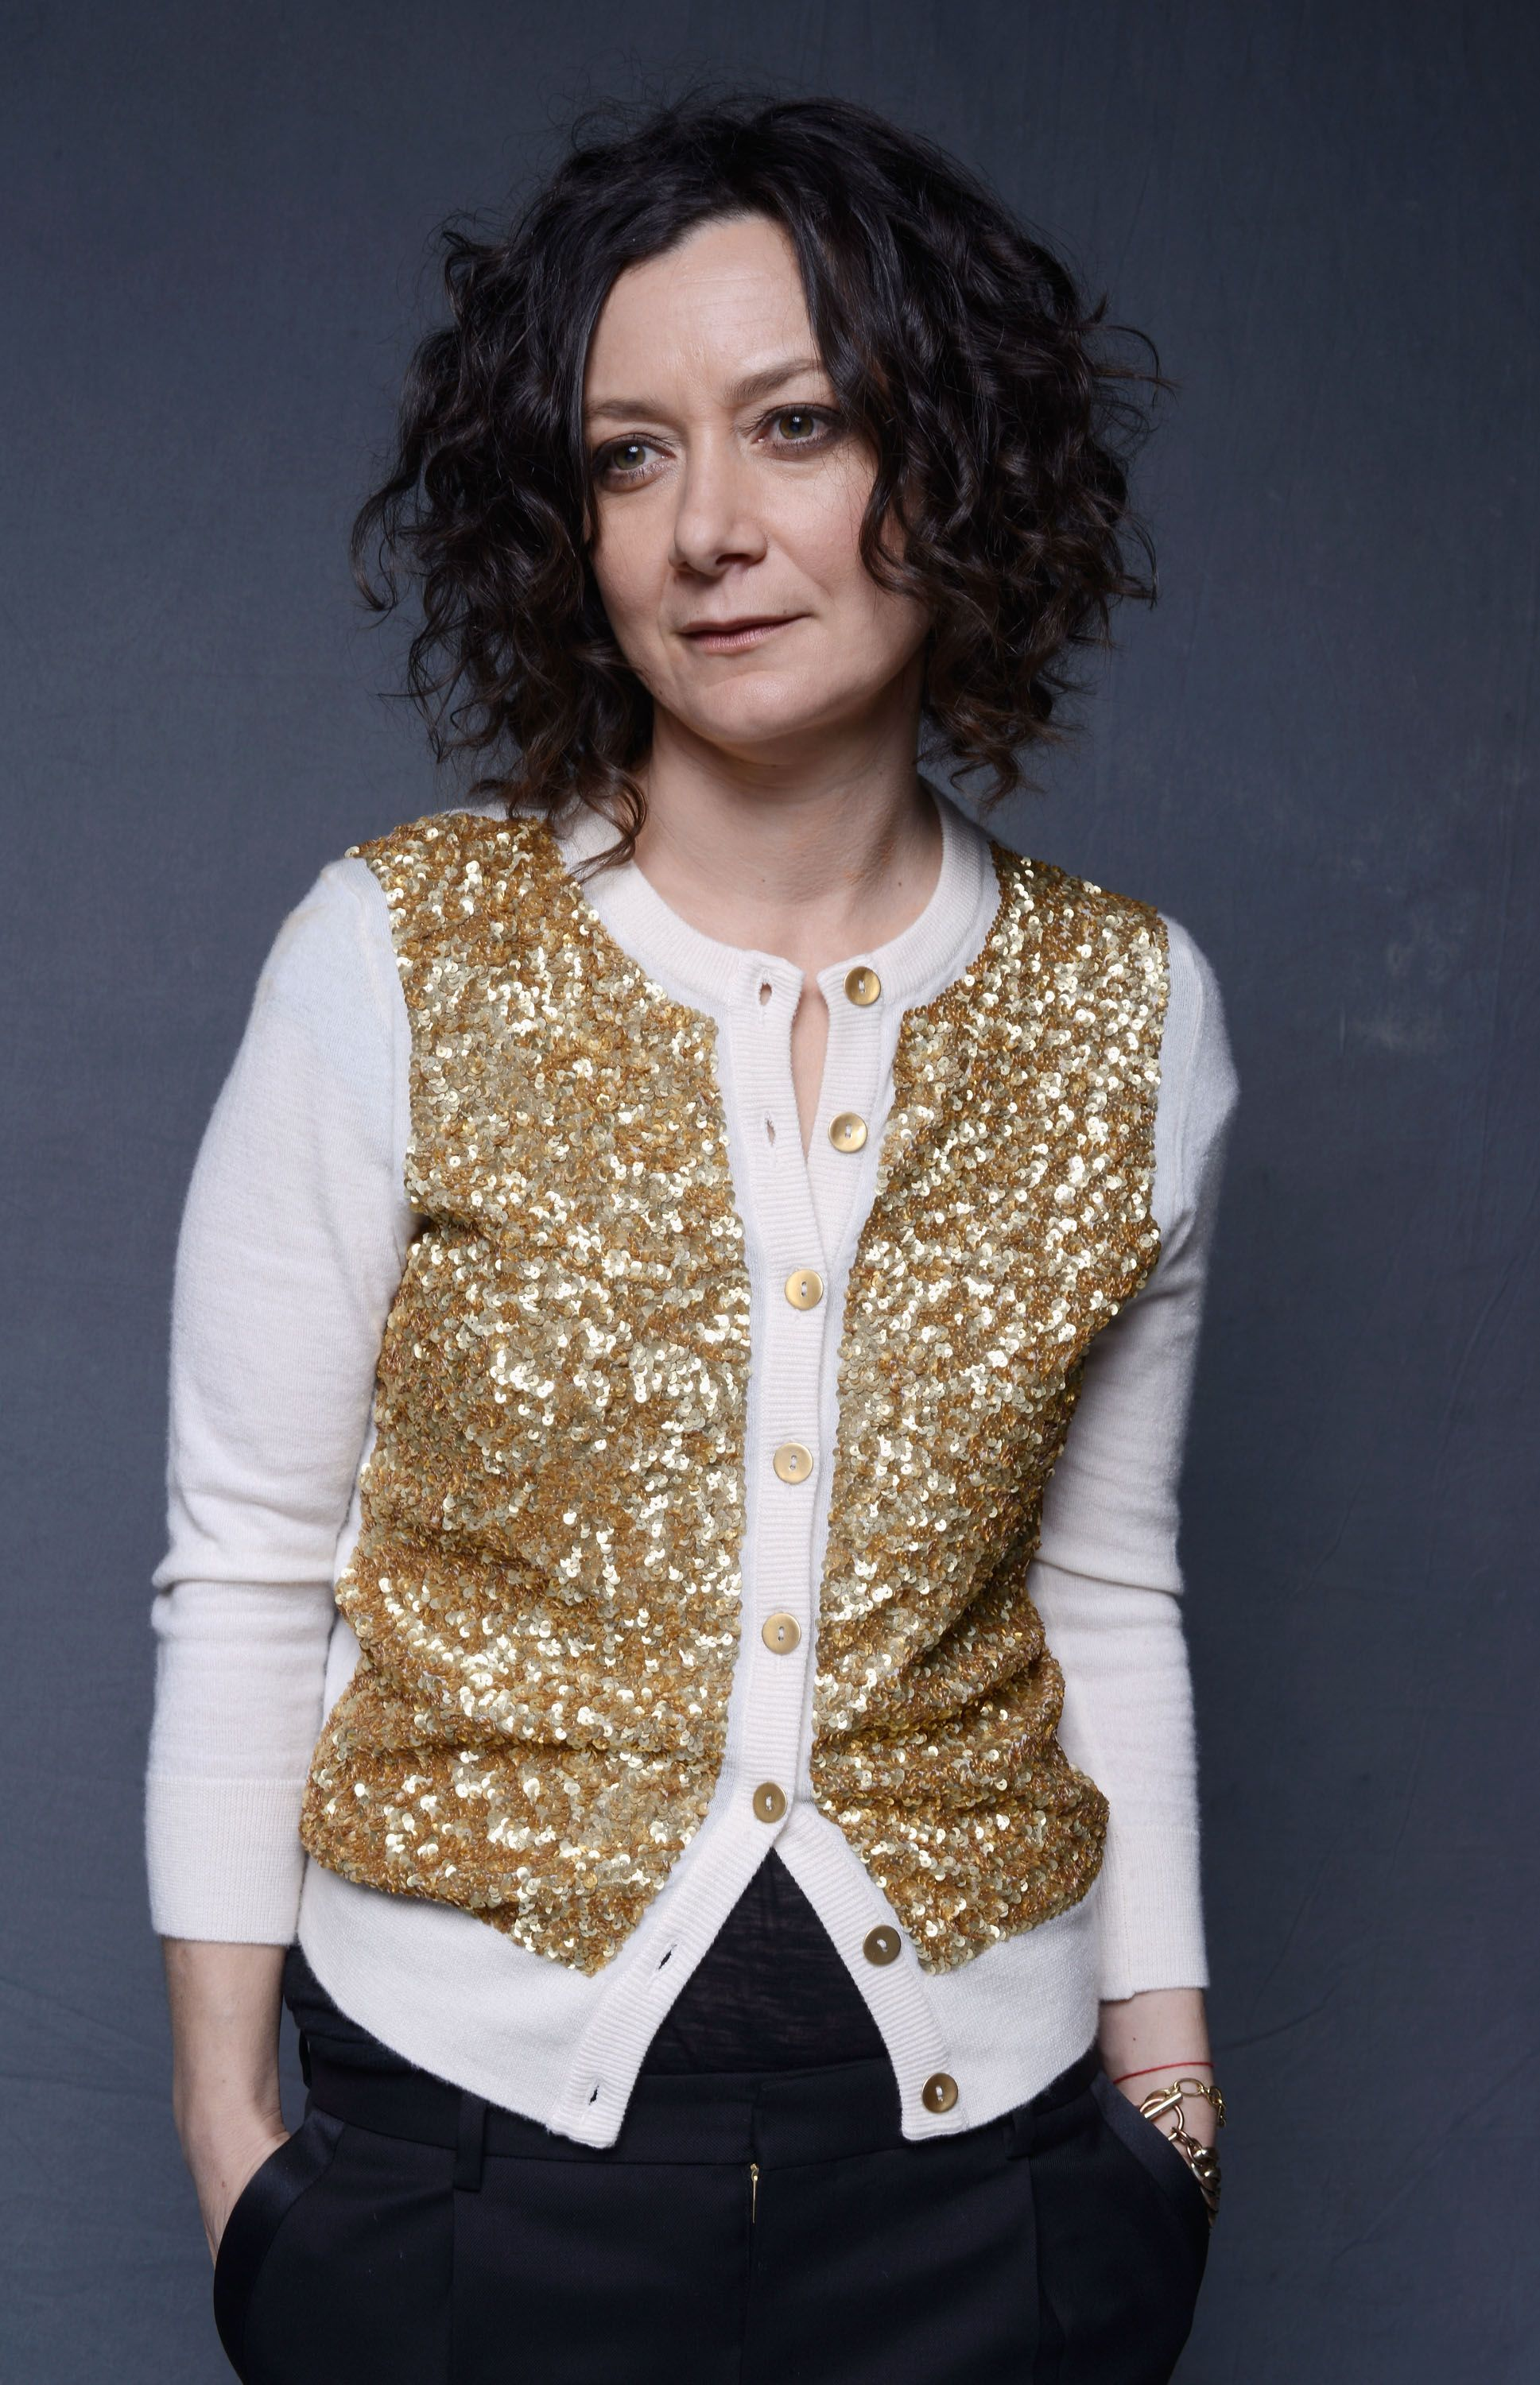 Sara Gilbert during The Art of Elysium's 7th Annual HEAVEN Gala presented by Mercedes-Benz at Skirball Cultural Center on January 11, 2014 in Los Angeles, California. | Source: Getty Images